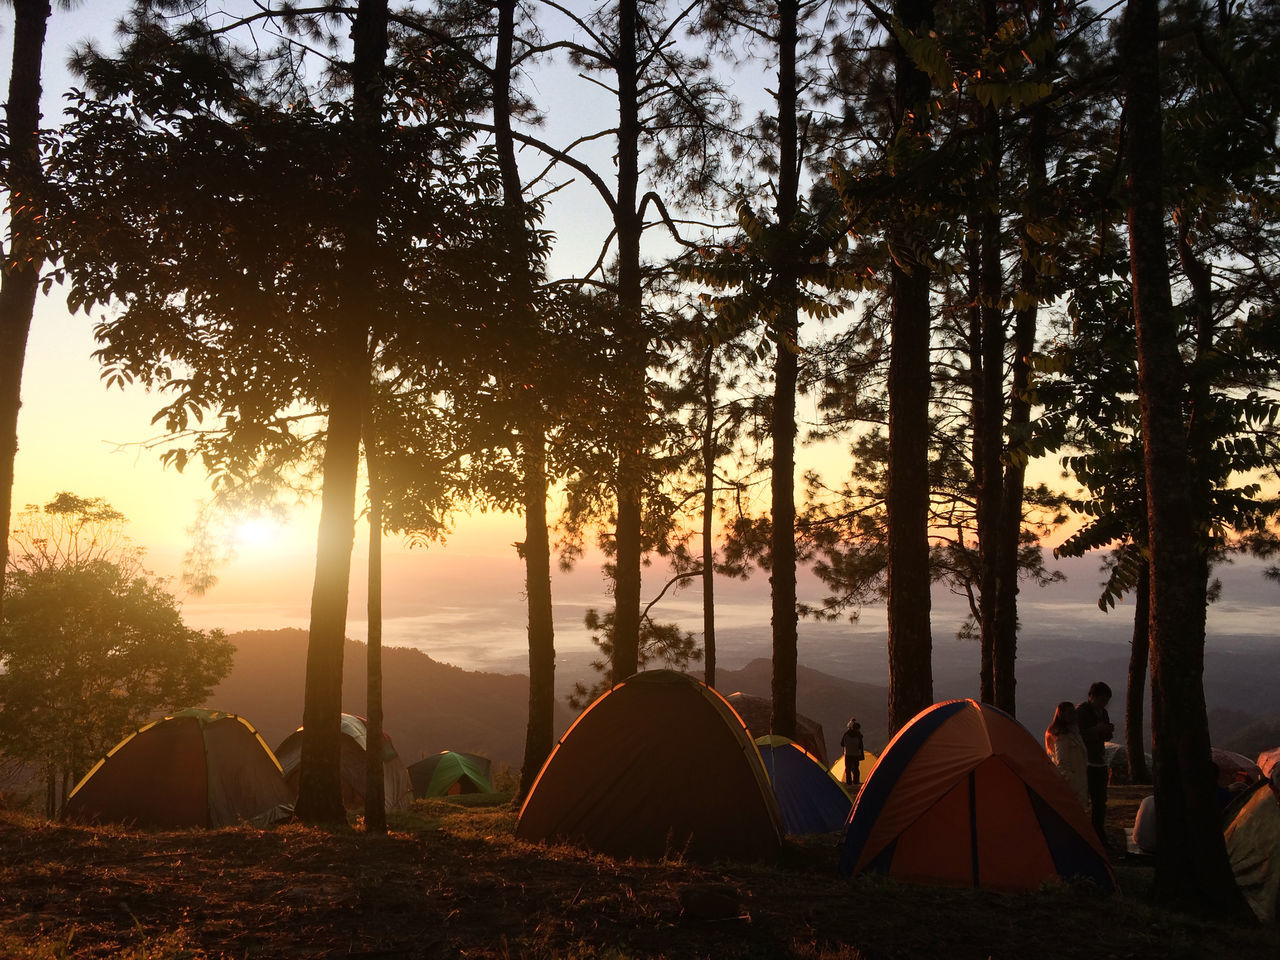 Camping over mountain with sunrise landscape. Adventure Beauty In Nature Camping Day Forest Landscape Nature No People Outdoors Scenics Shelter Silhouette Sky Sunlight Sunset Tent Tranquility Tree